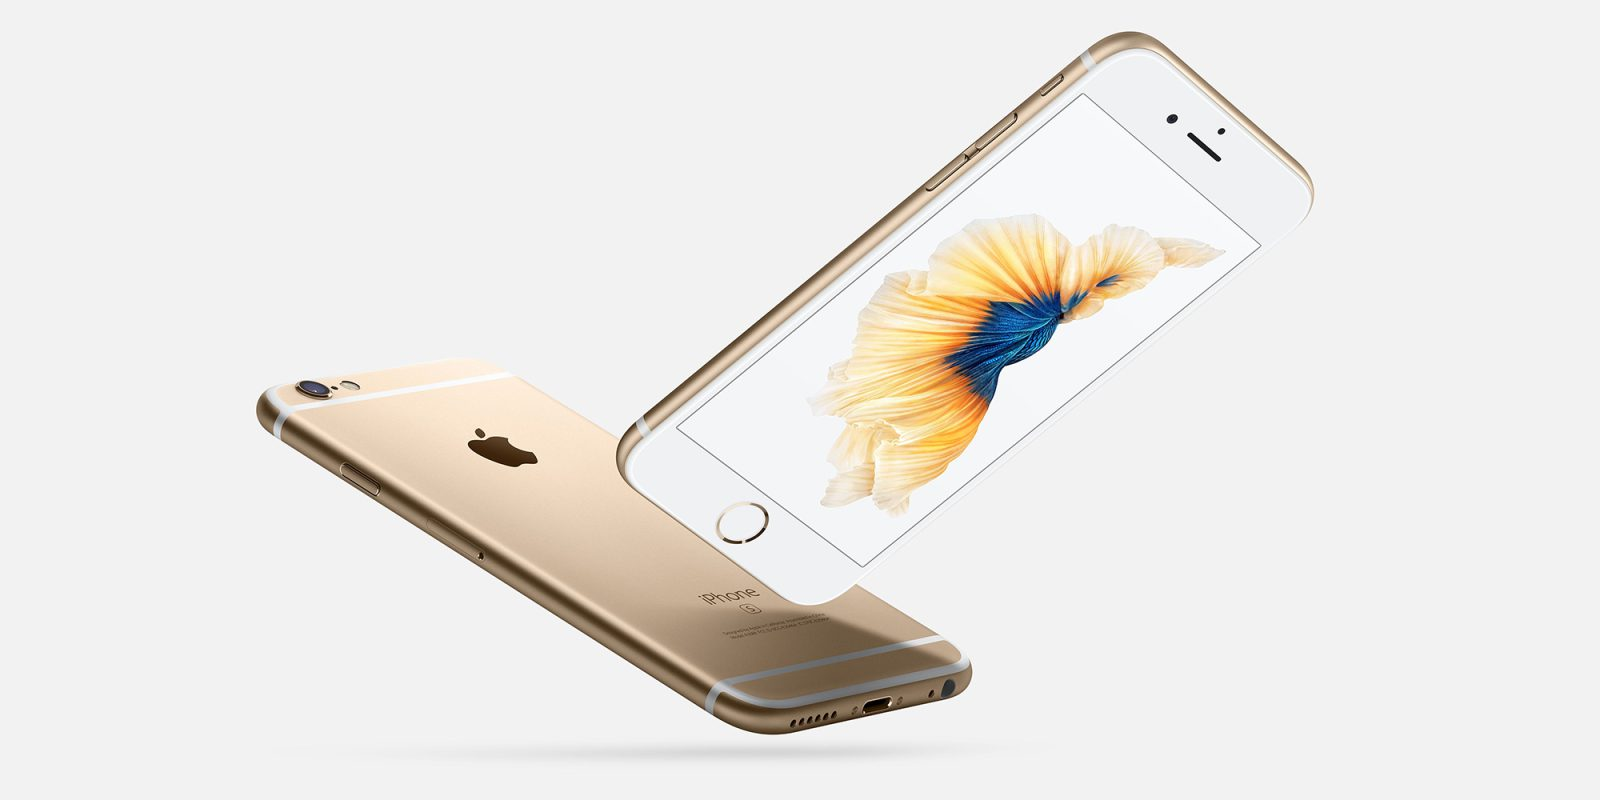 Apple opens a repair program for iPhone 6s and 6s Plus that cannot be powered on